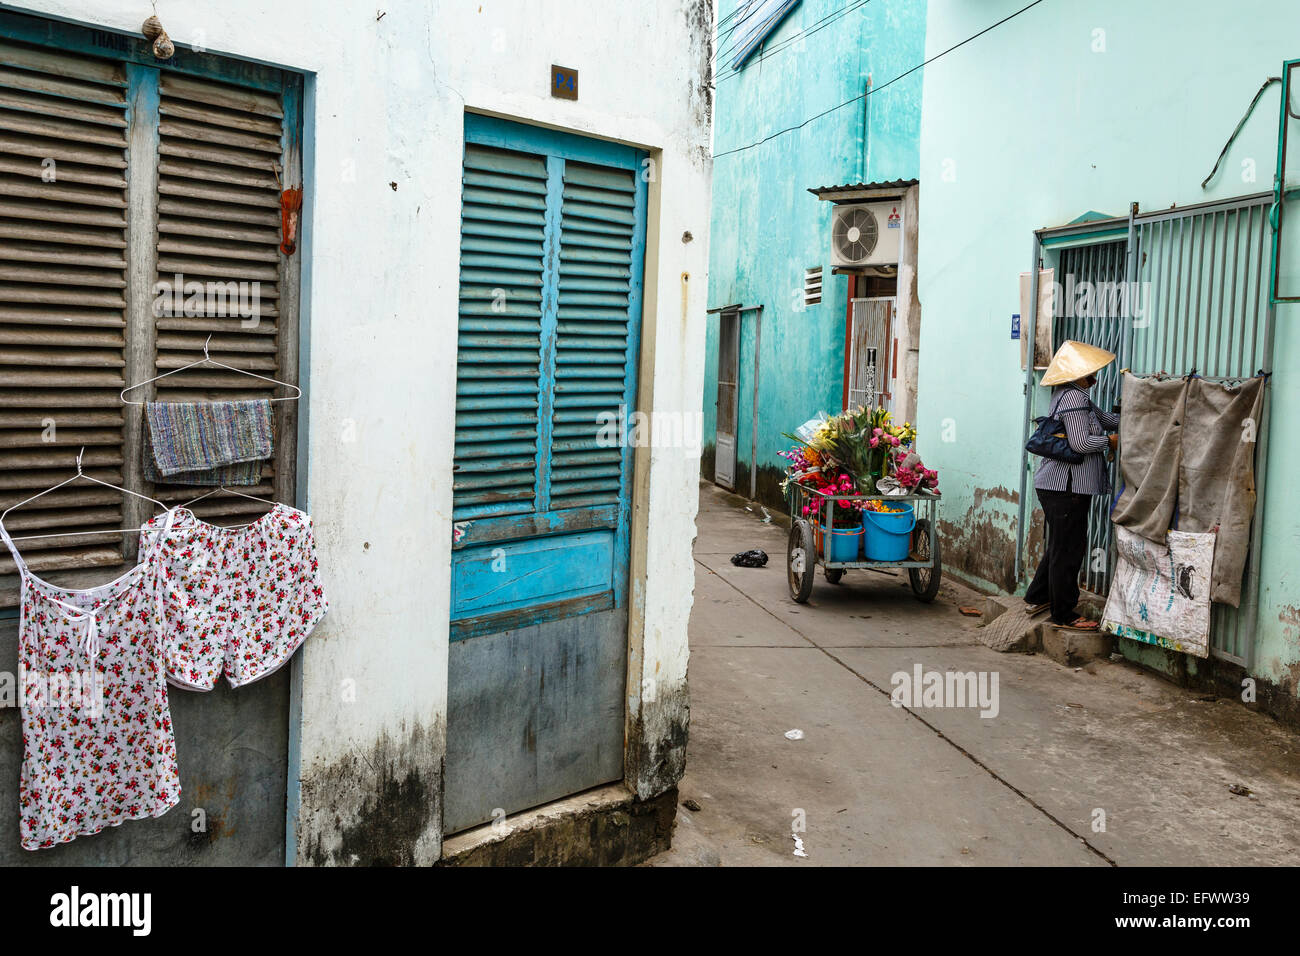 Flower Seller, Can Tho, Mekong Delta, Vietnam - Stock Image